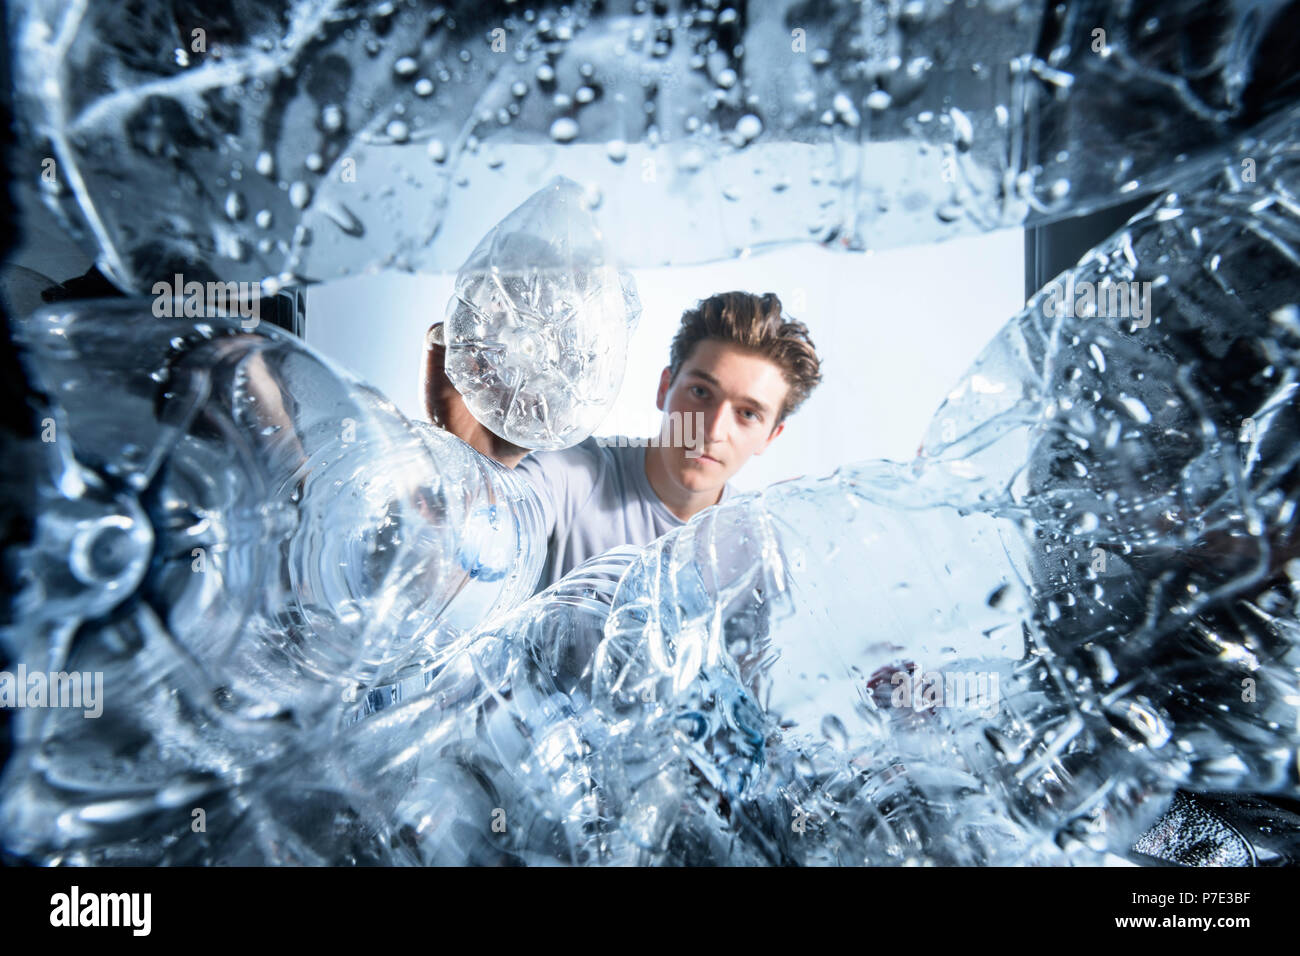 Man throwing away plastic water bottles into recycling bin - Stock Image